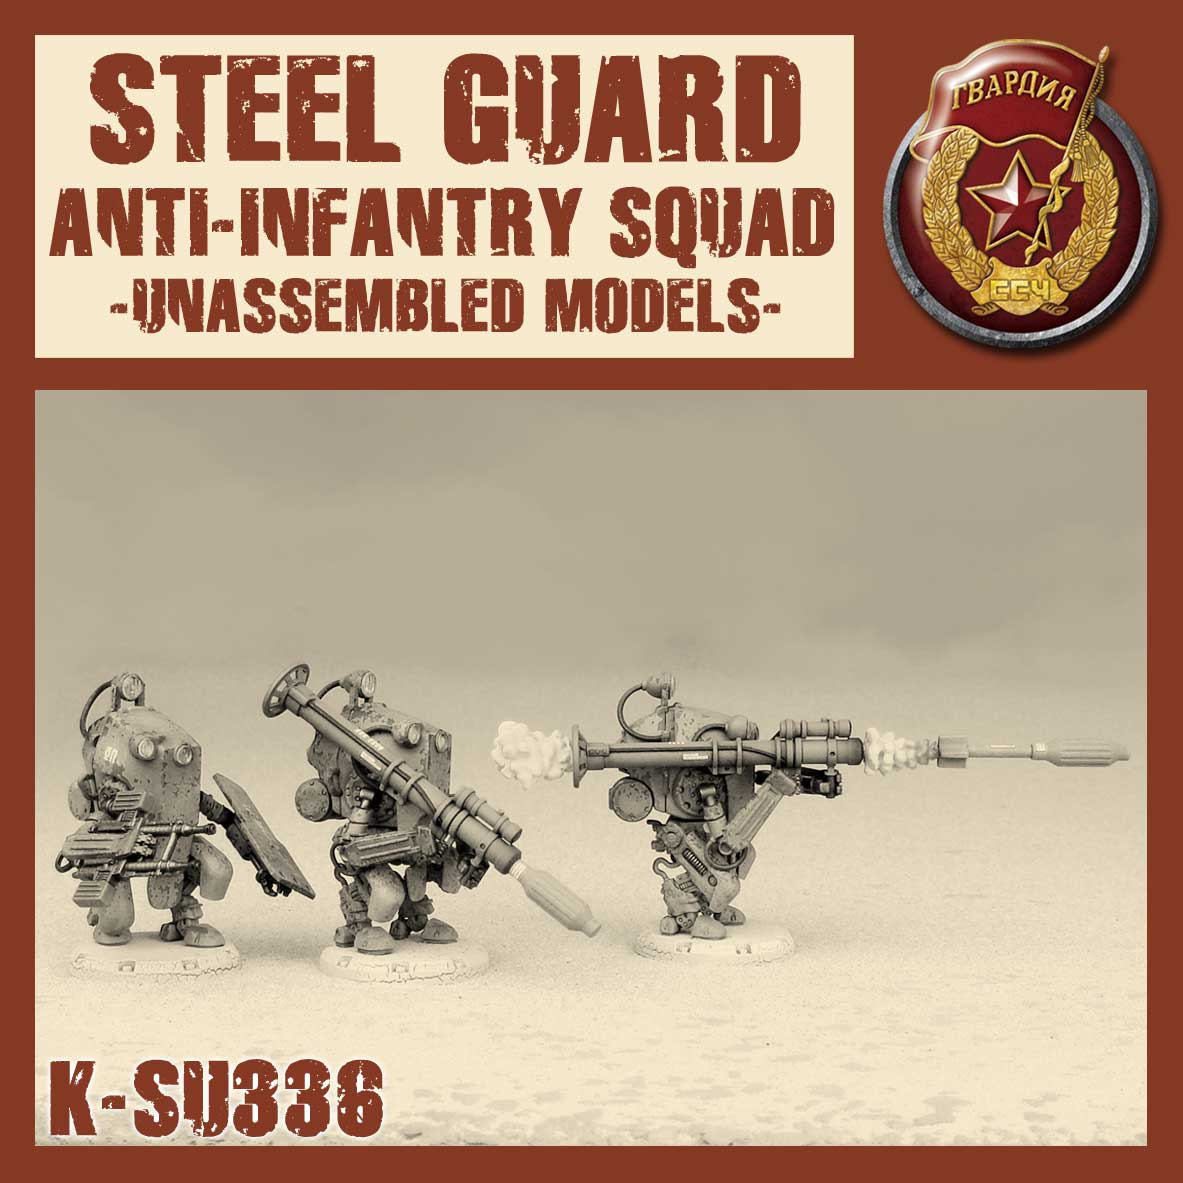 Steel Guard Anti-Infantry Squad Kit